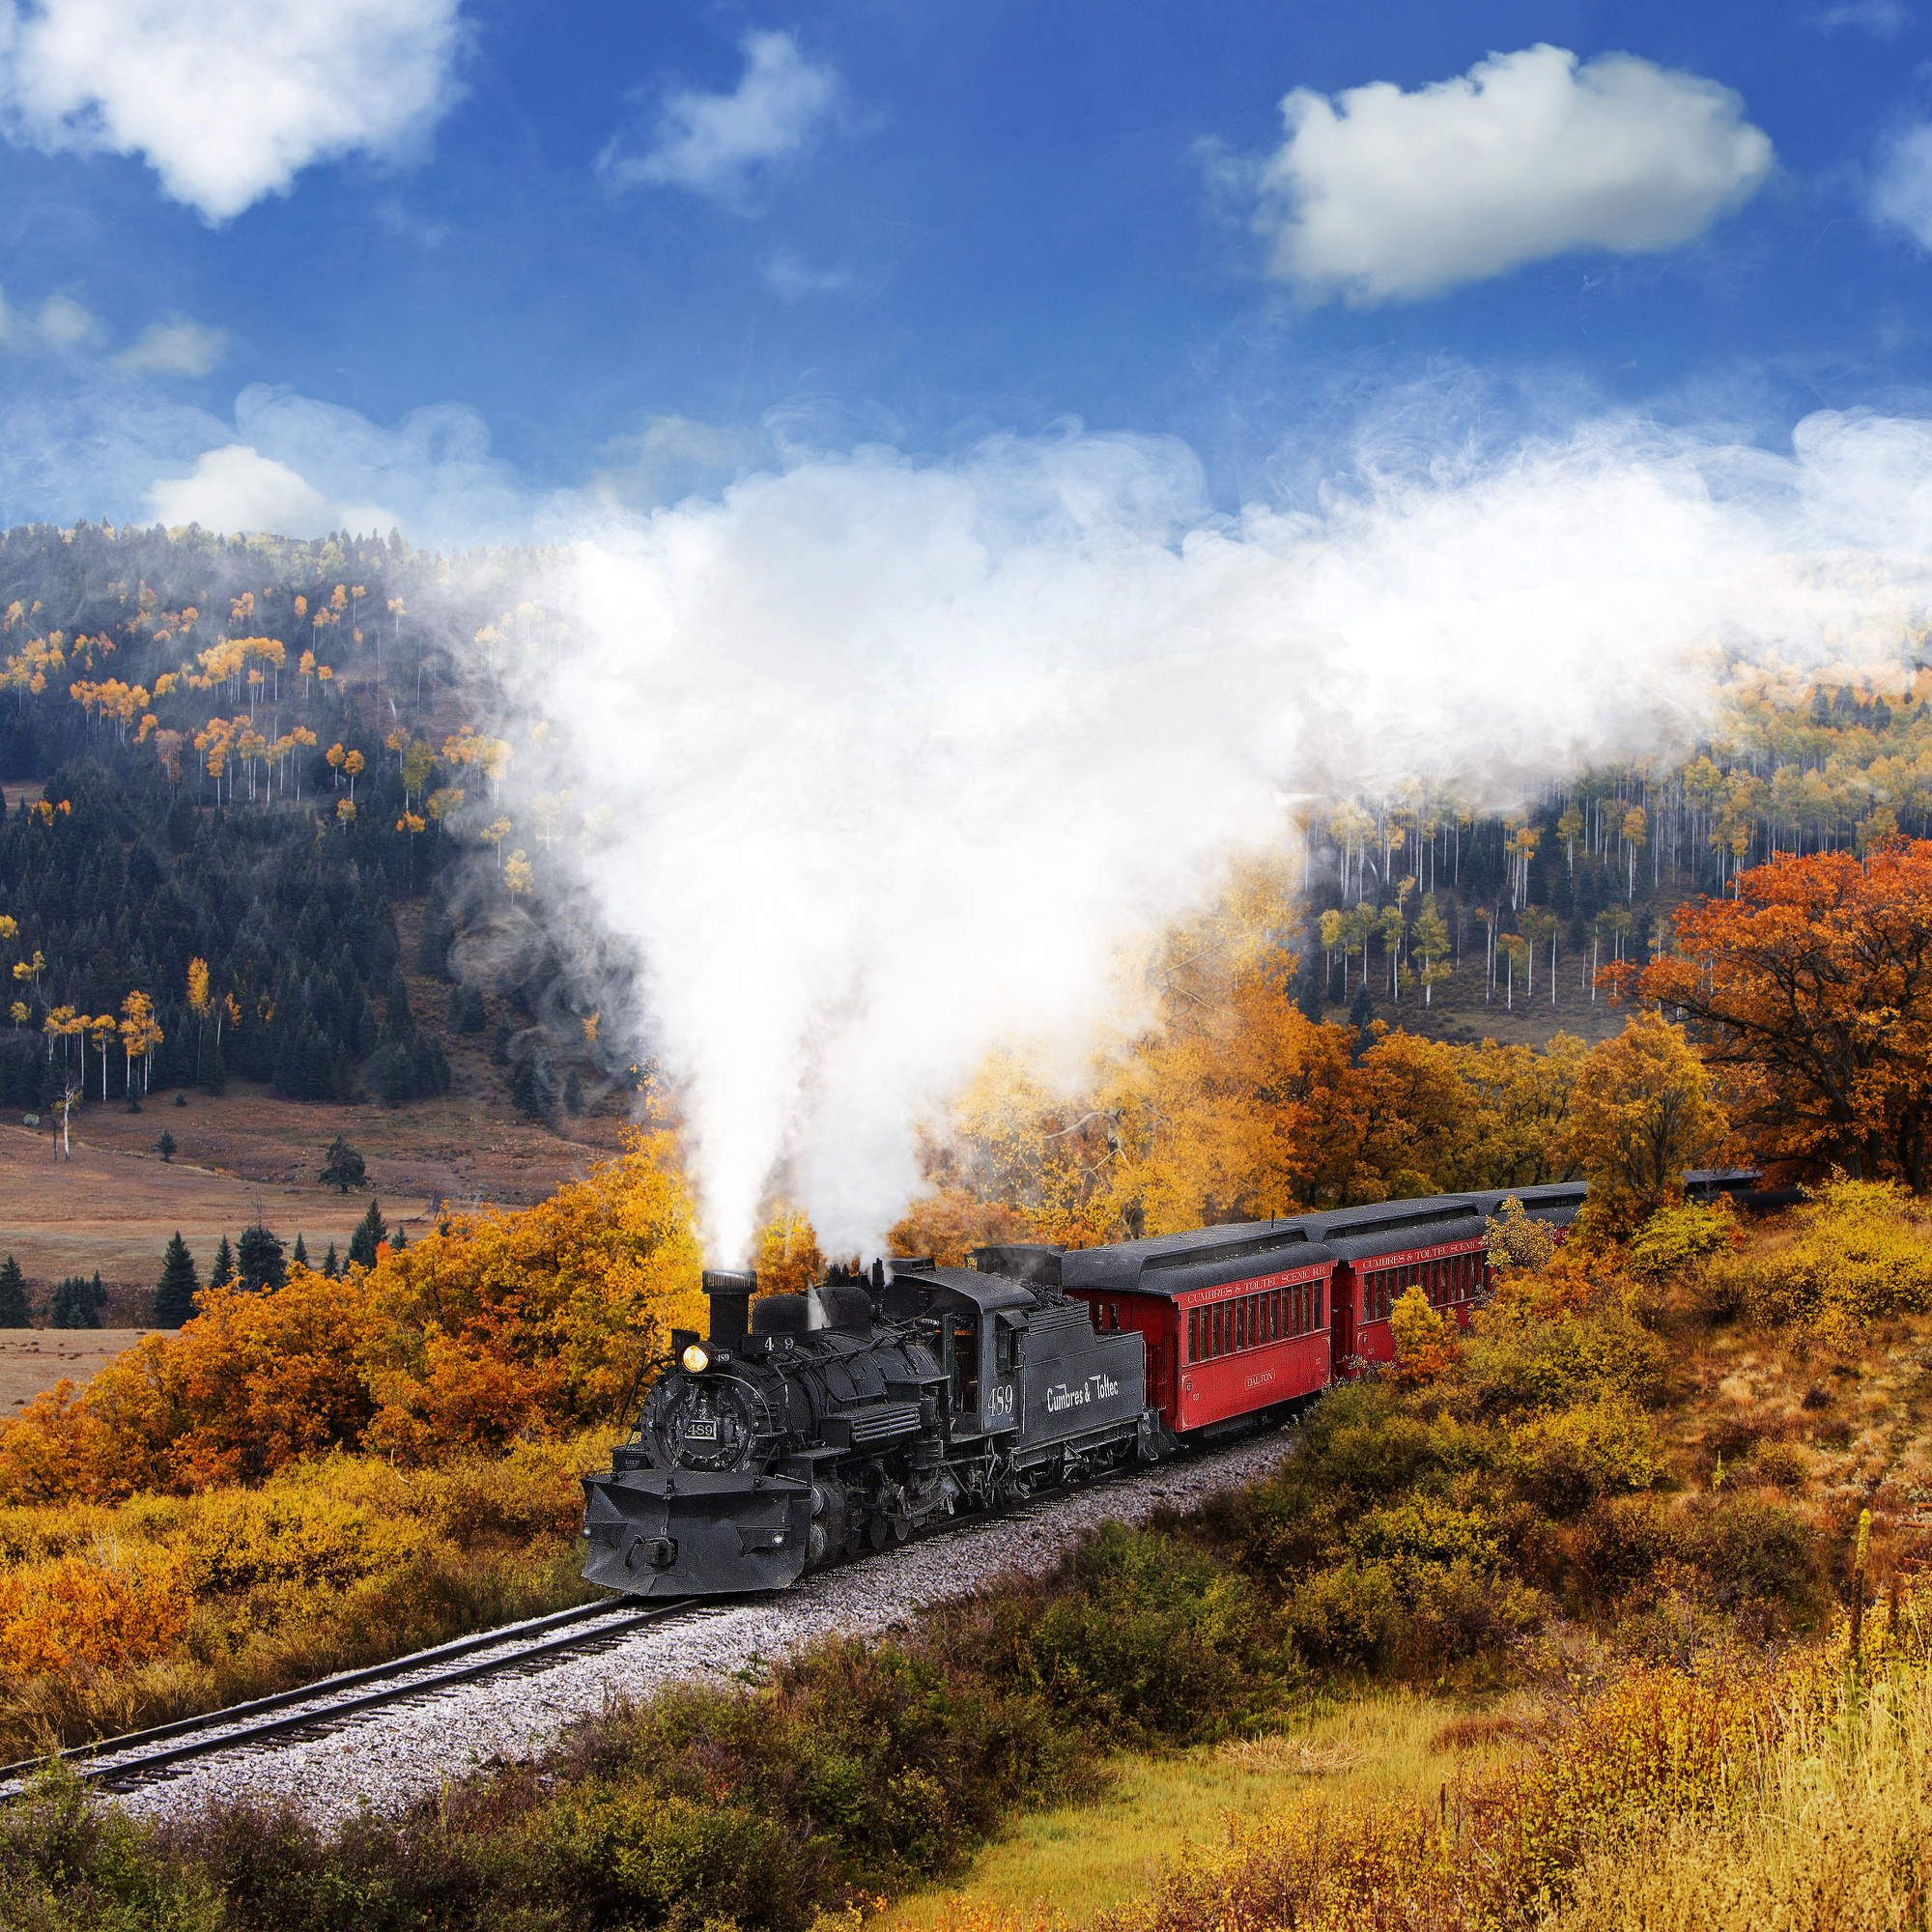 Catch Some Fall Foliage On These Beautiful Train Rides Across The